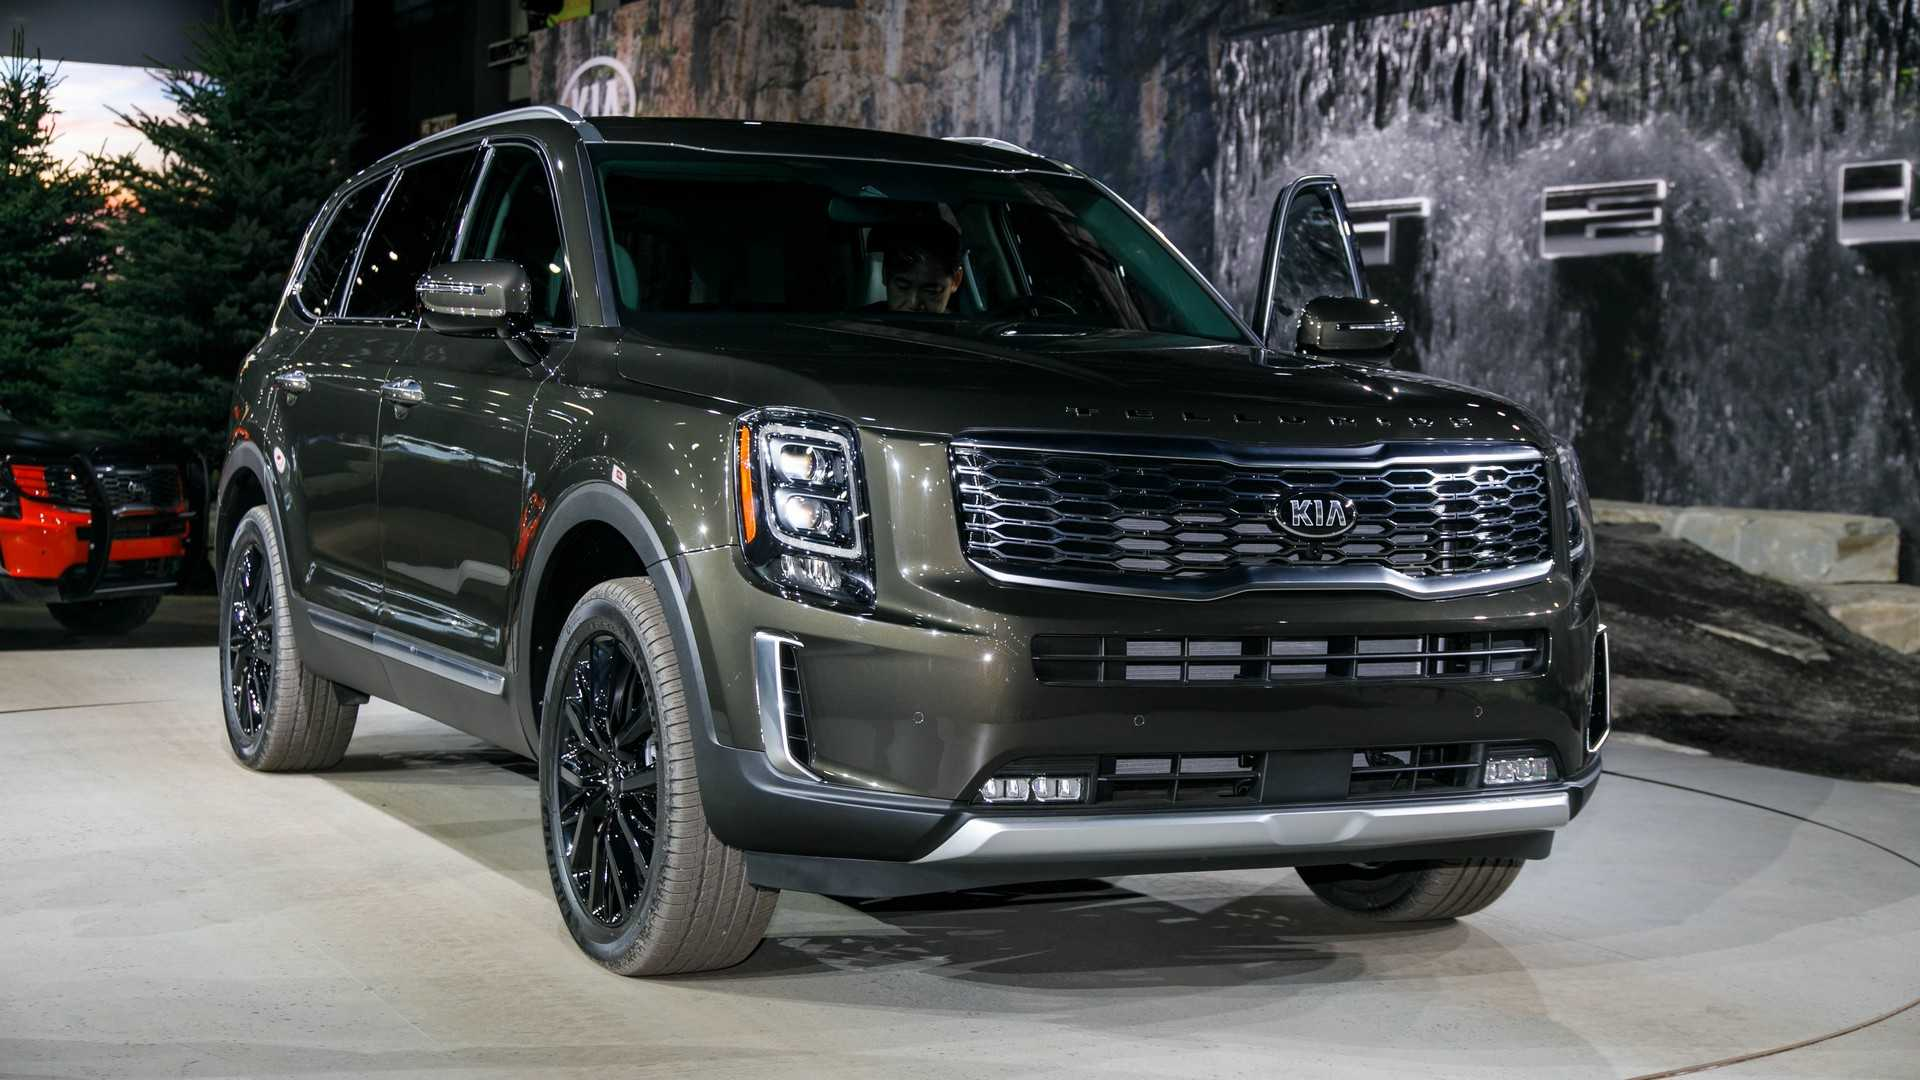 95 Gallery of Kia 2020 Telluride Exterior and Interior by Kia 2020 Telluride